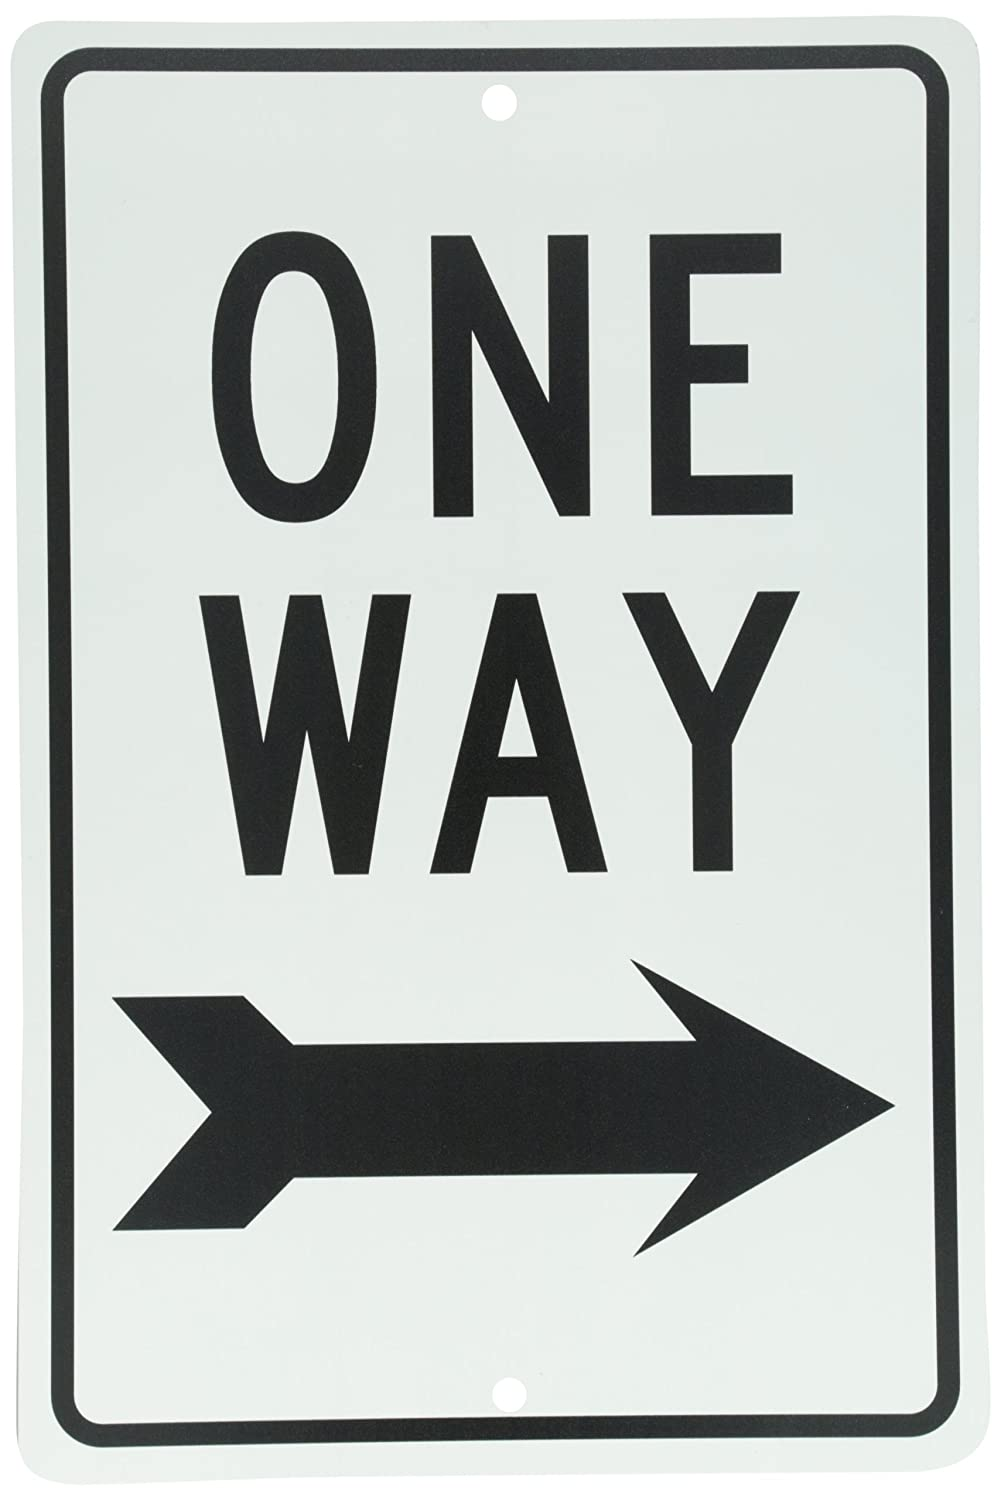 Legend ONE WAY with Right Arrow Graphic 12 Length x 18 Height NMC TM23G Traffic Sign Black On White Legend ONE WAY with Right Arrow Graphic 12 Length x 18 Height NMCTM23G 0.040 Aluminum